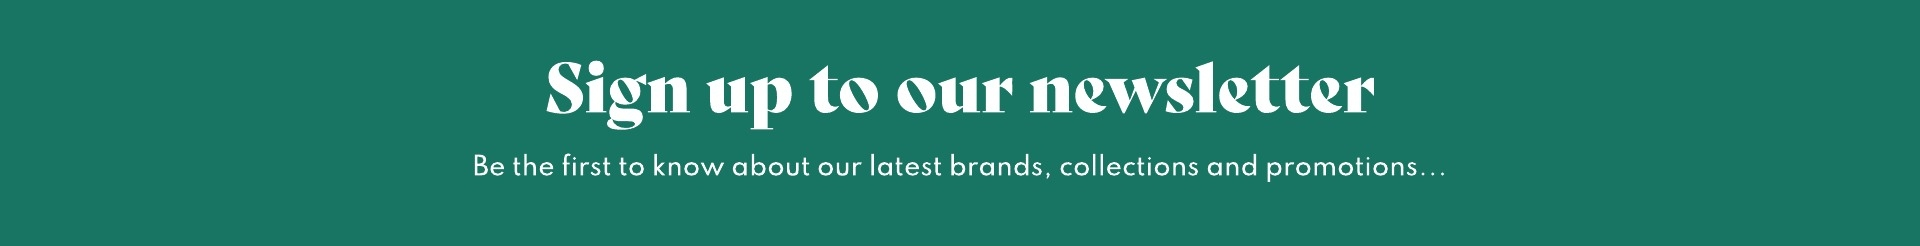 Sign up to The Hut's newsletter below to hear first about new collections and promotions.